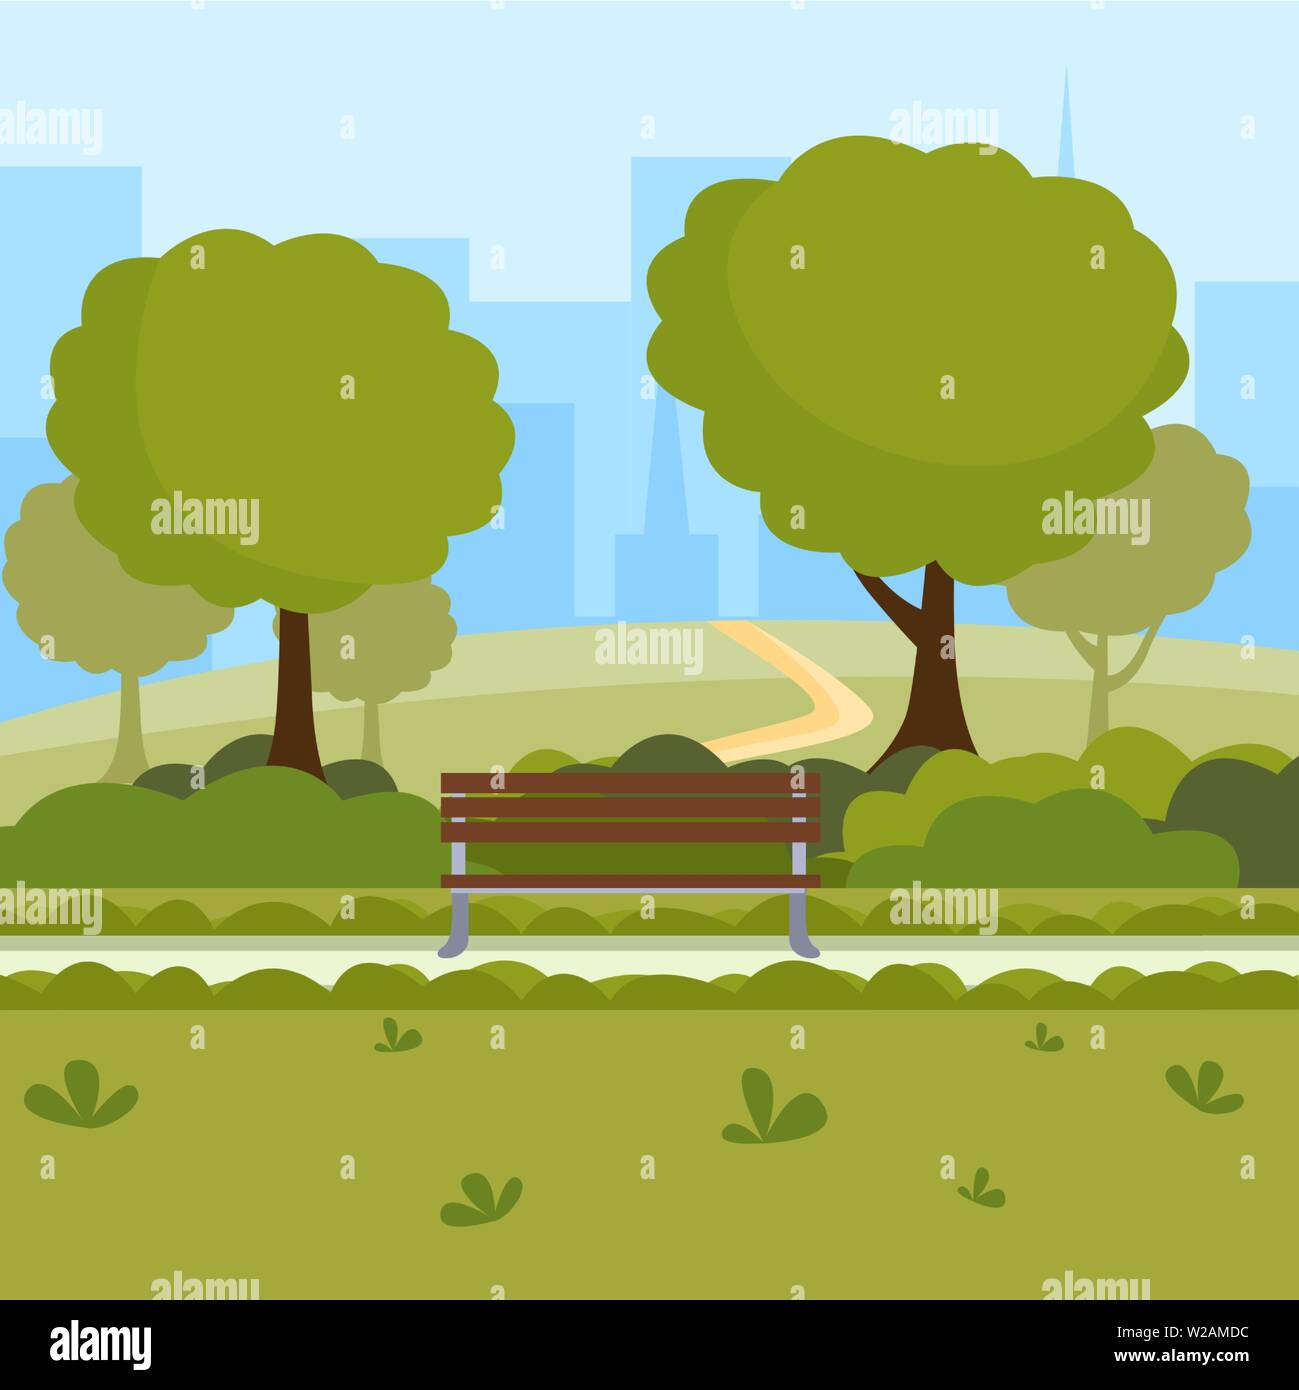 Urban park cartoon vector illustration. Outdoor leisure on nature public place, green trees, wooden benches and modern buildings cityspace. Recreational downtown central park drawing - Stock Vector